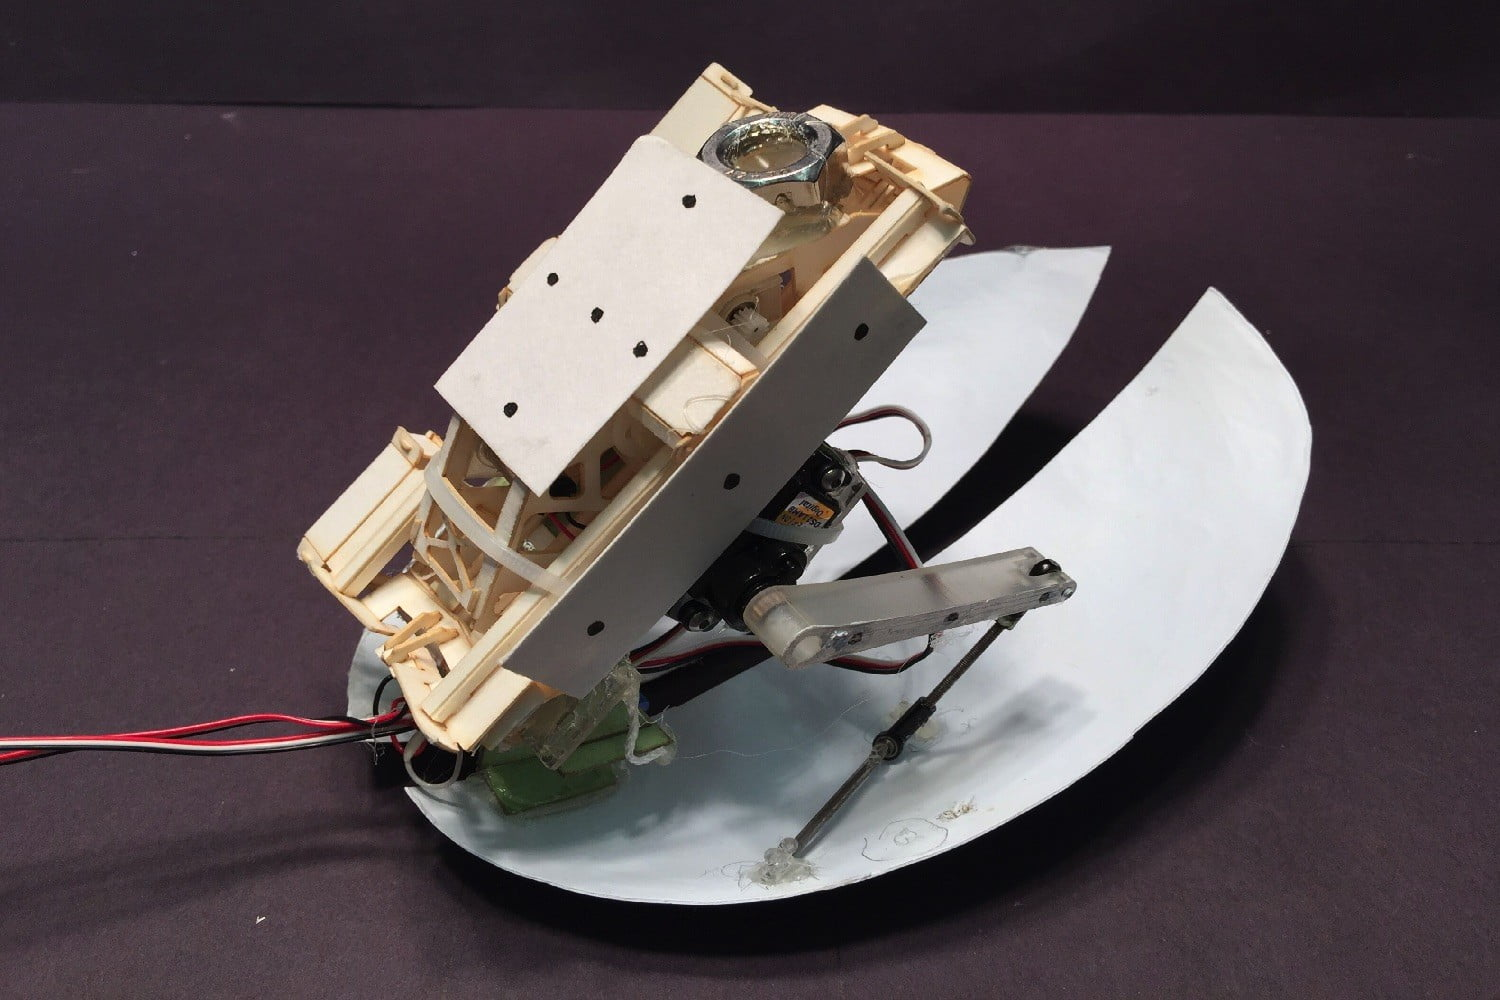 cockroach robot flaps its wings cockroach5